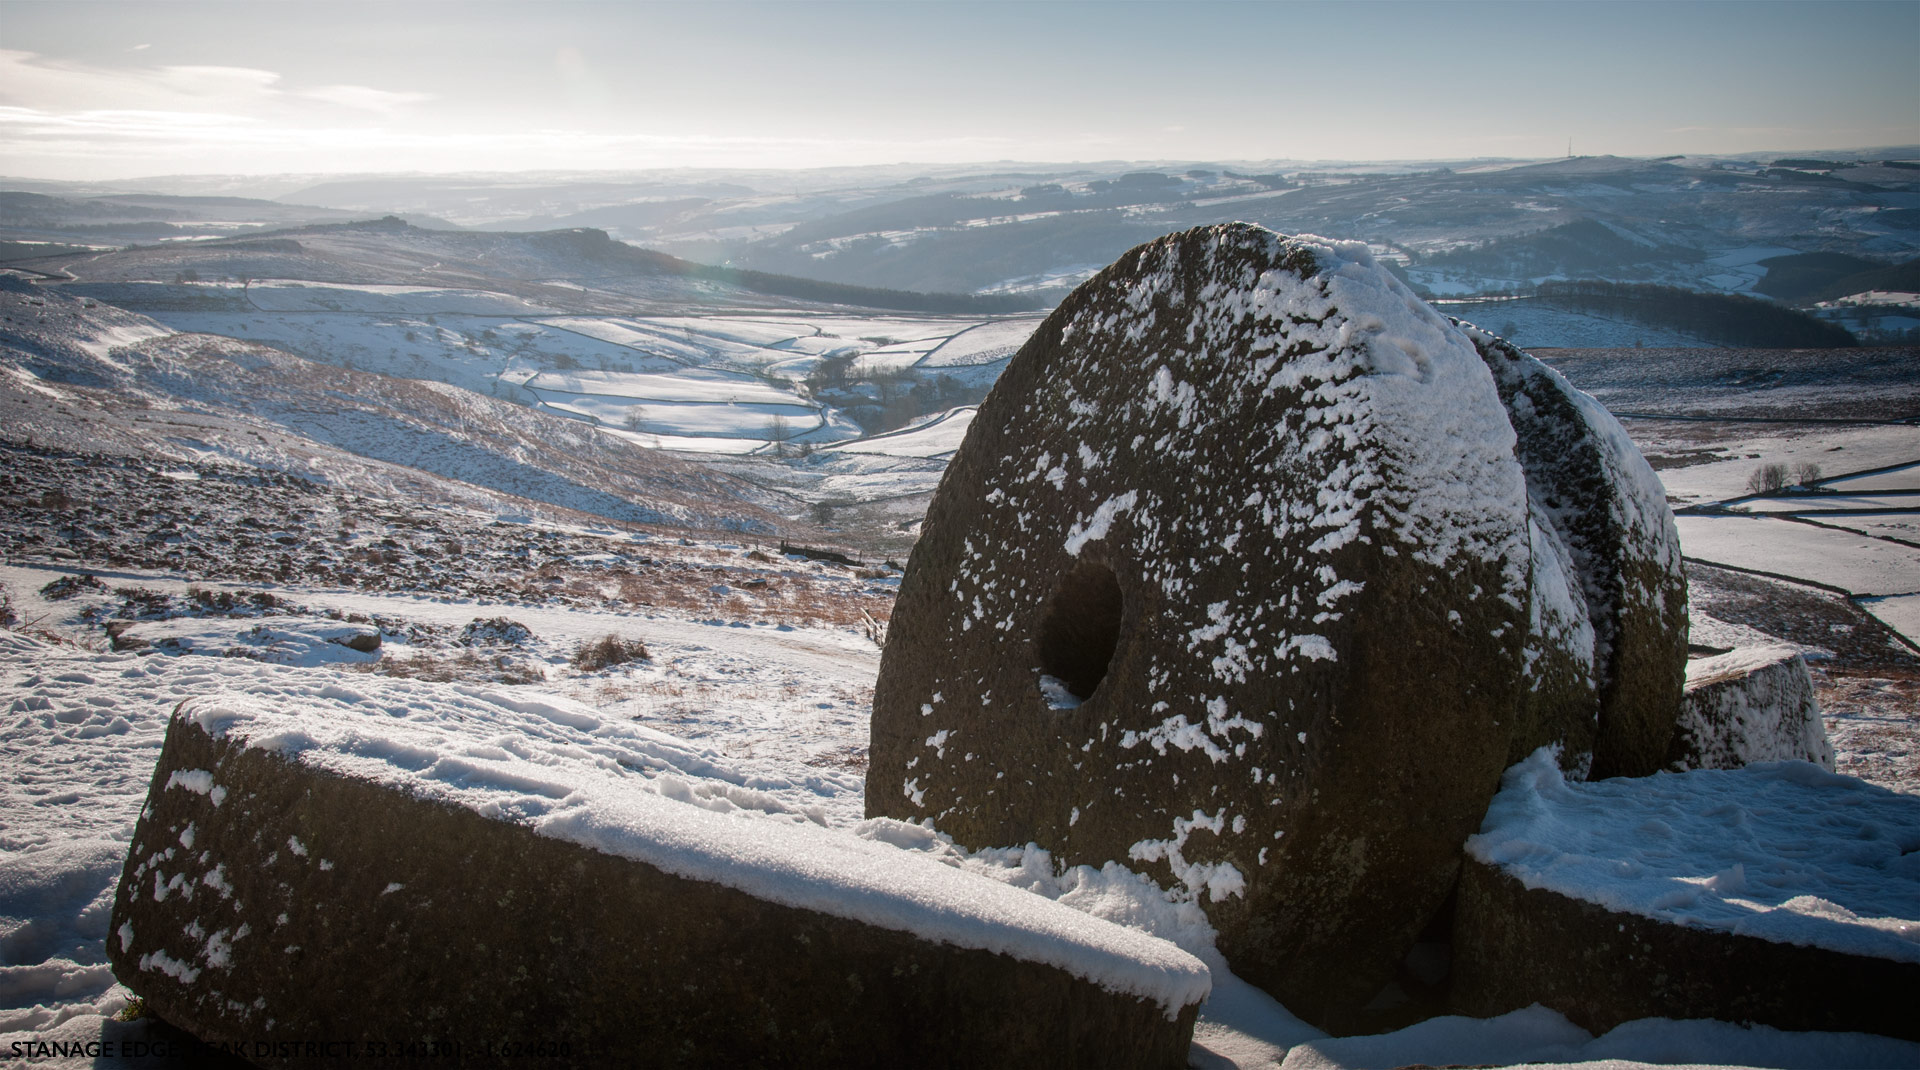 Stanage Edge Millstones in the snow of the Peak District near Sheffield